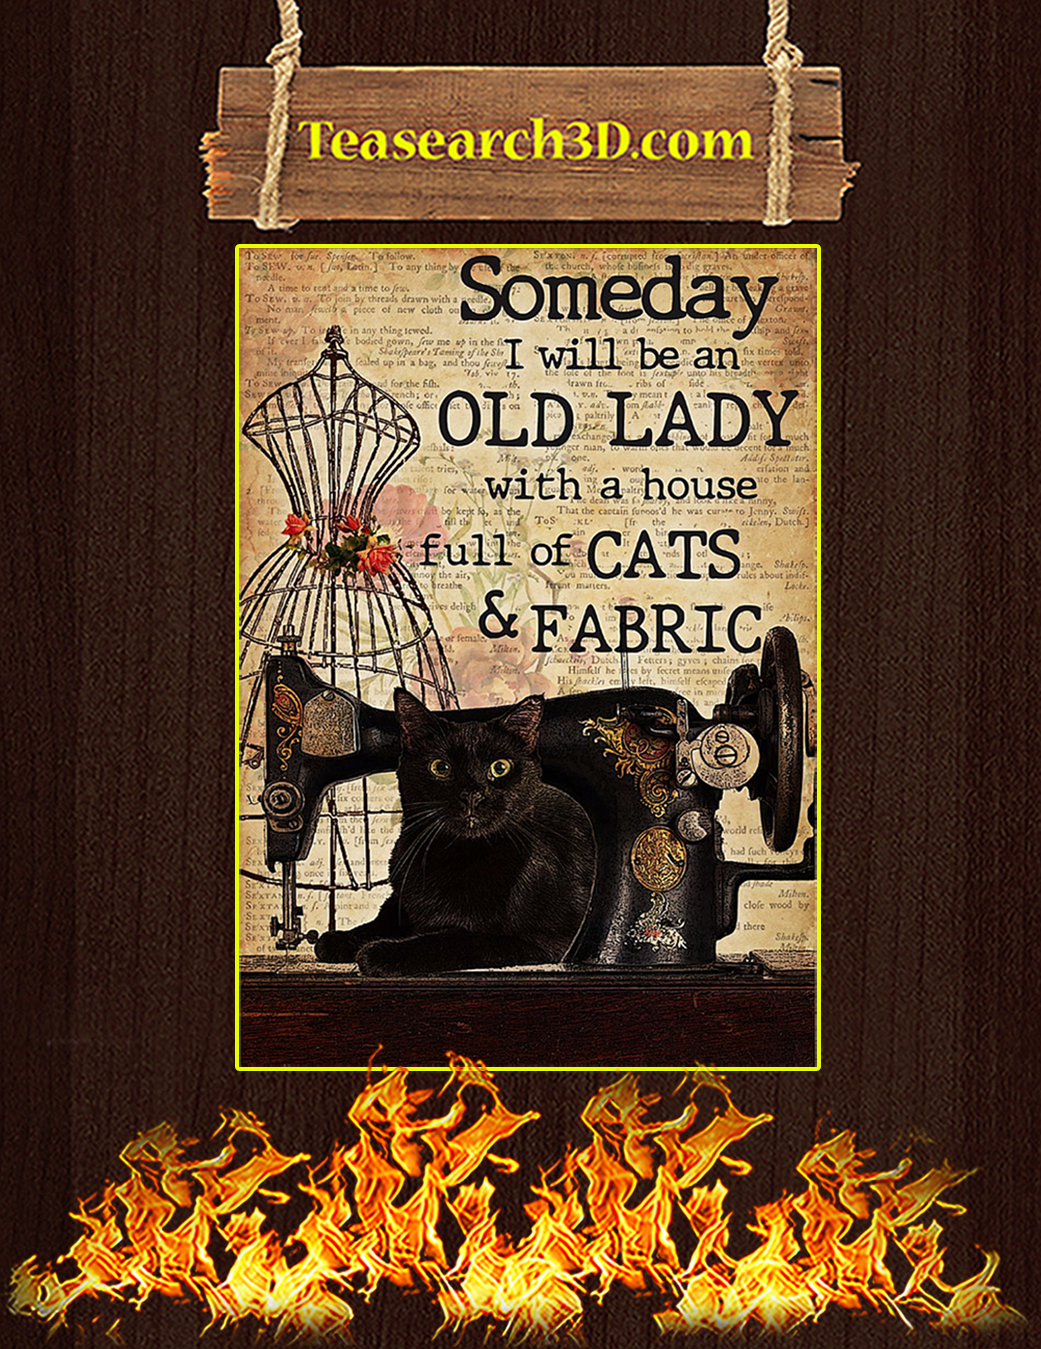 Sewing Someday I will be an old lady with a house full of cats and fabric poster A1